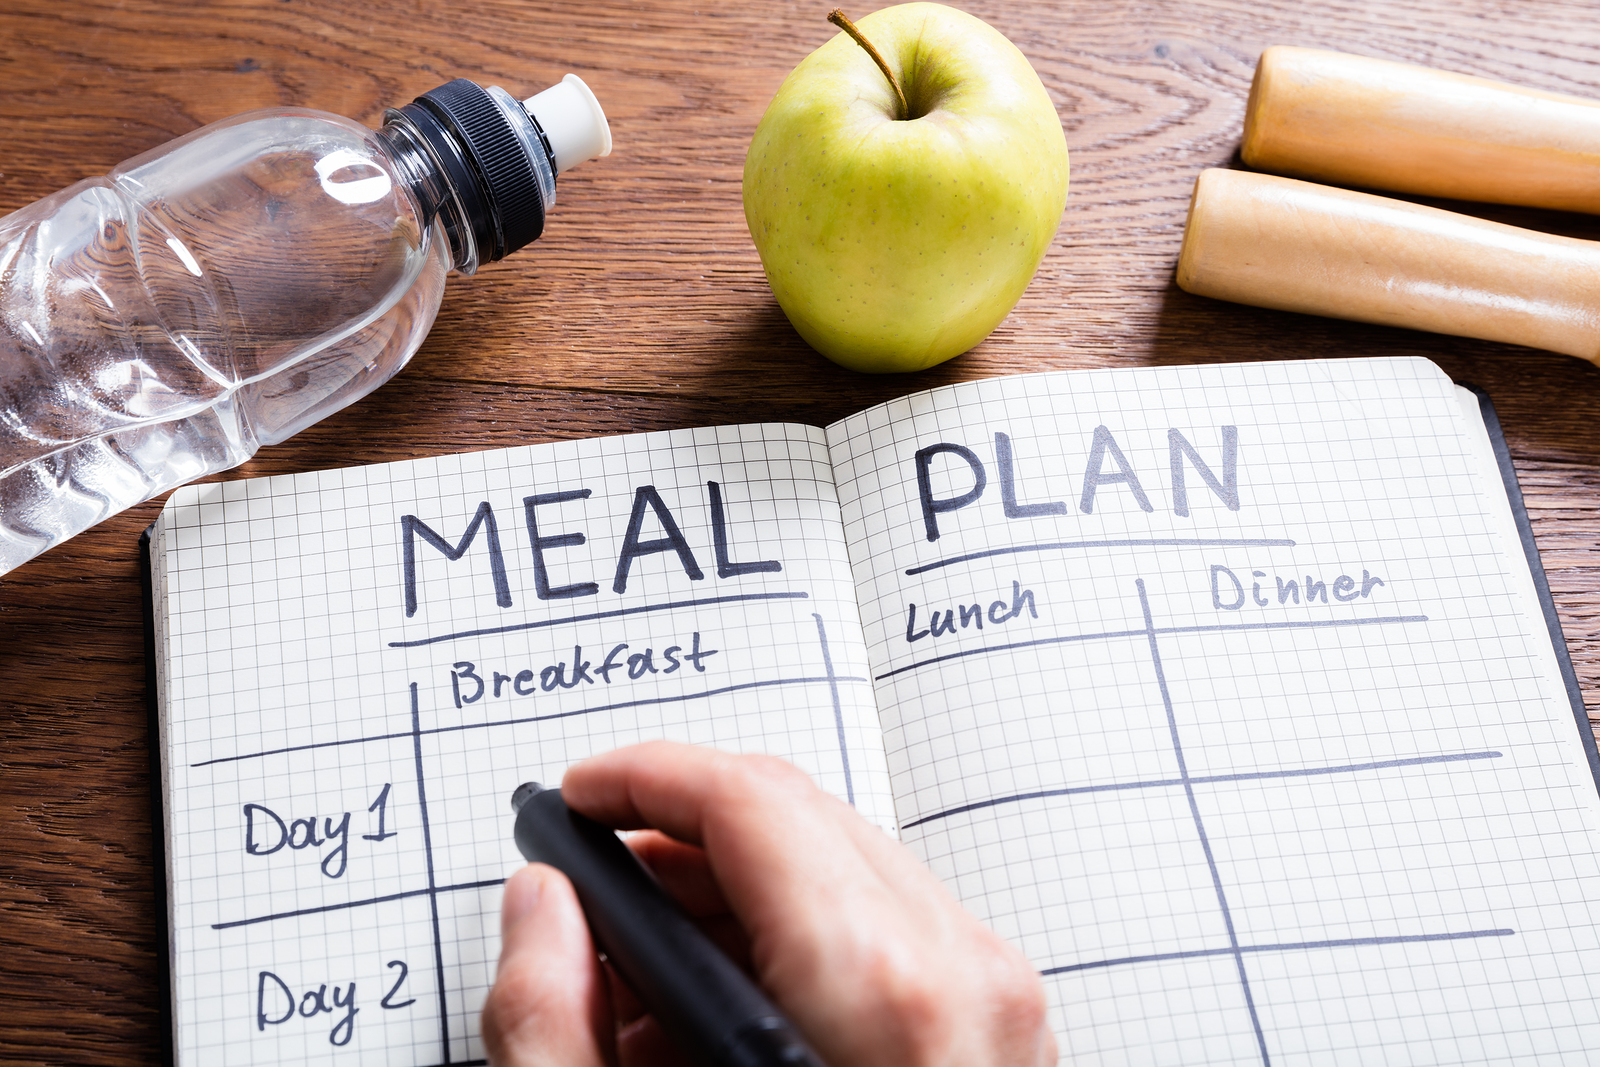 contact fierce miles for nutrition coaching and weight loss diet plans, weight loss diet plans by fierce miles fitness and nutrition, kseniya burns nutrition coach